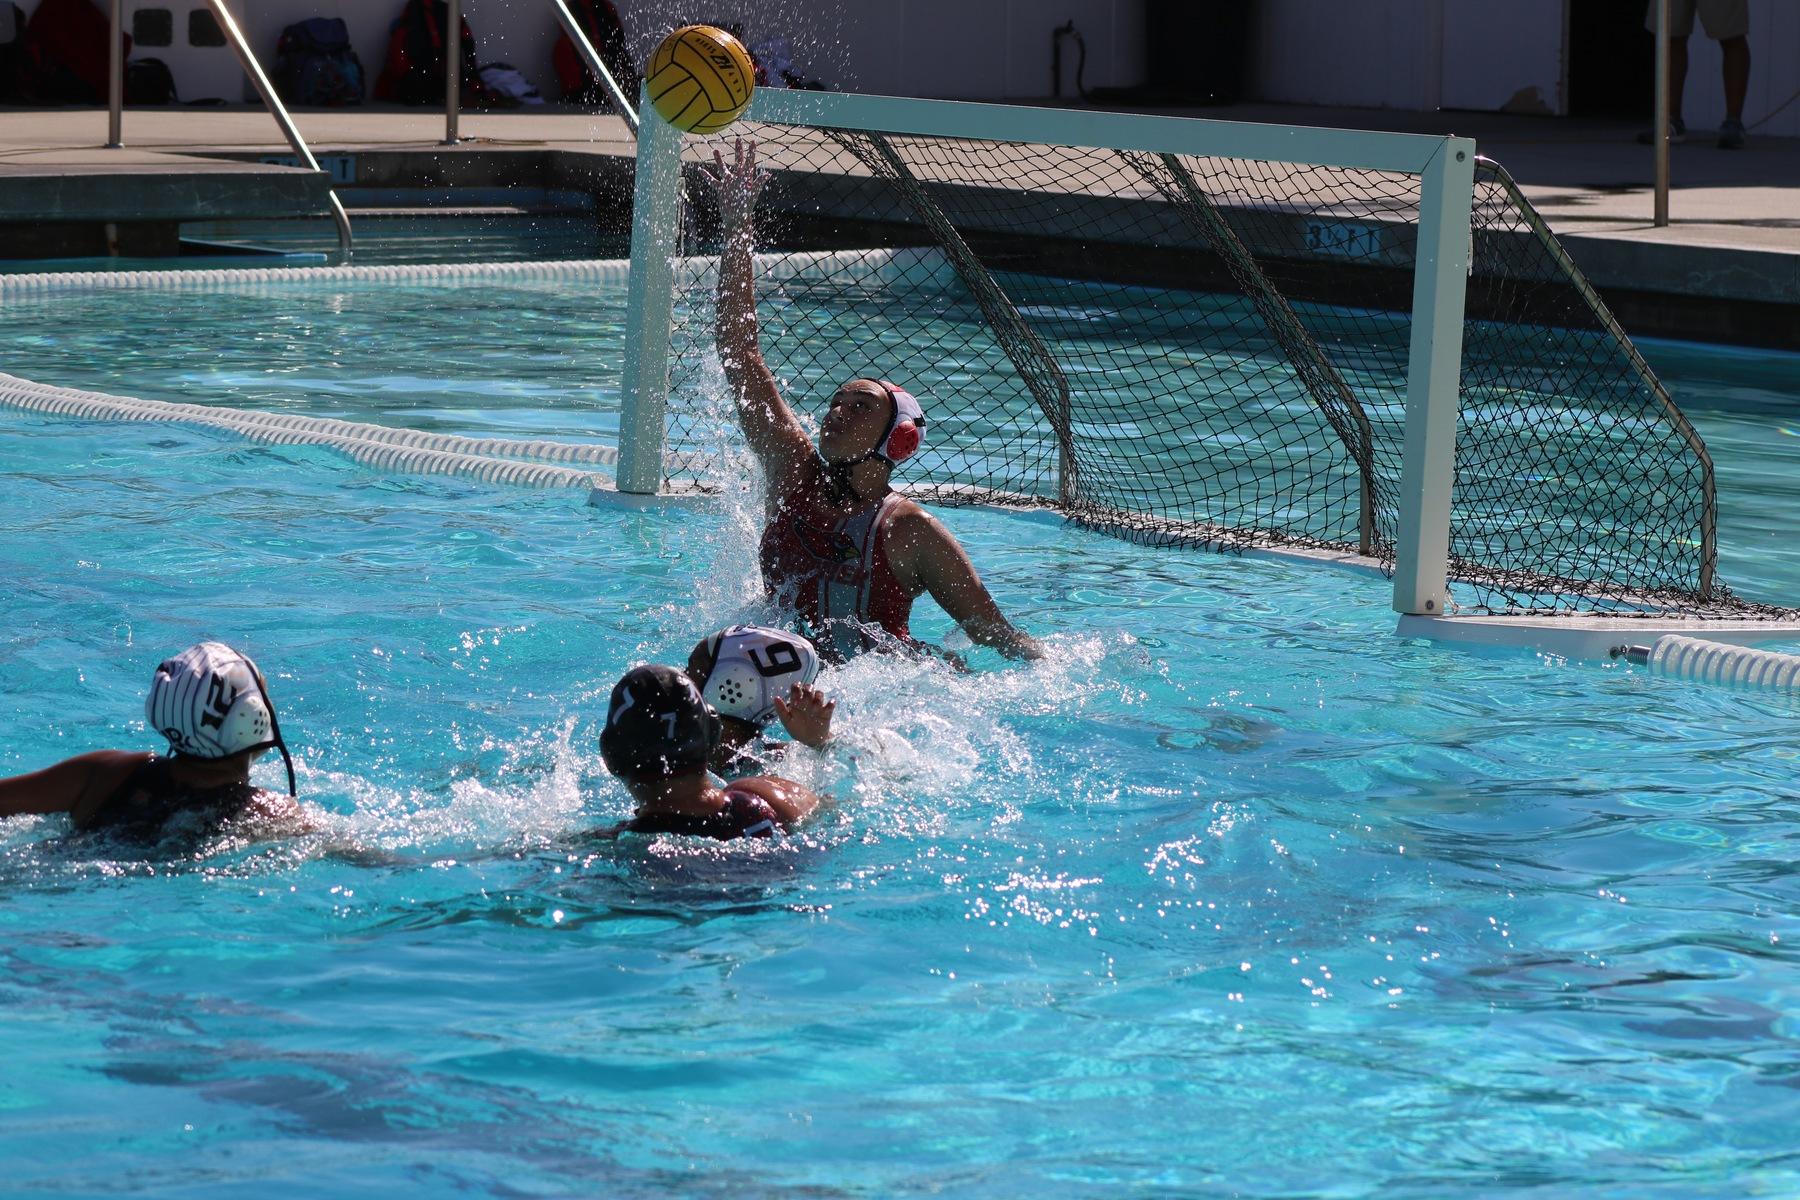 WOMEN'S WATER POLO GAME